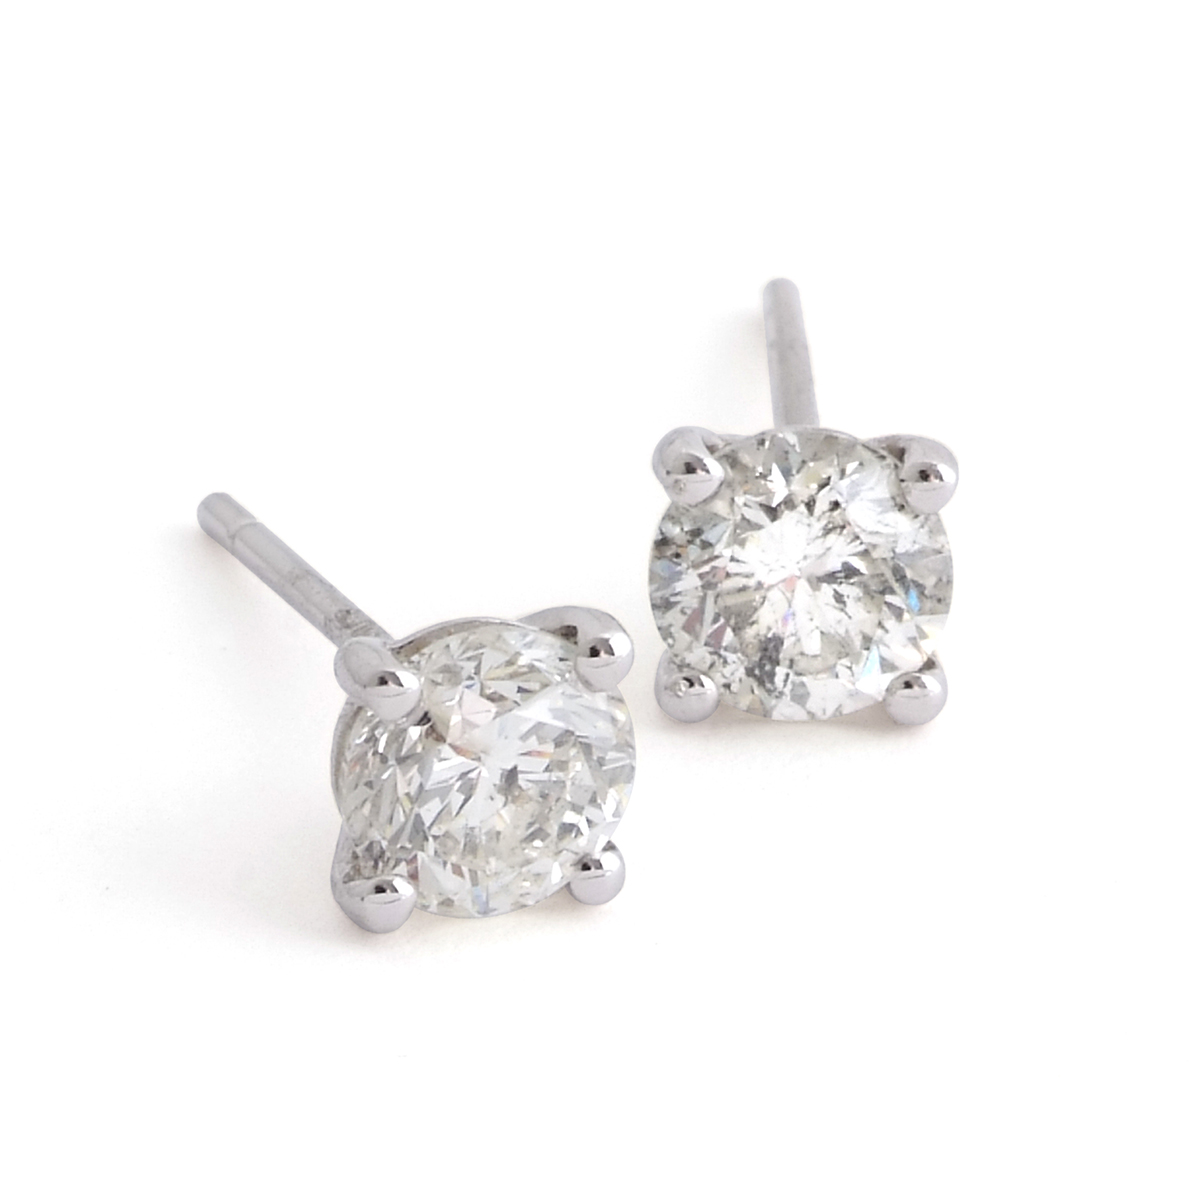 Pair-of-brilliant-cut-diamond-earstuds.jpg